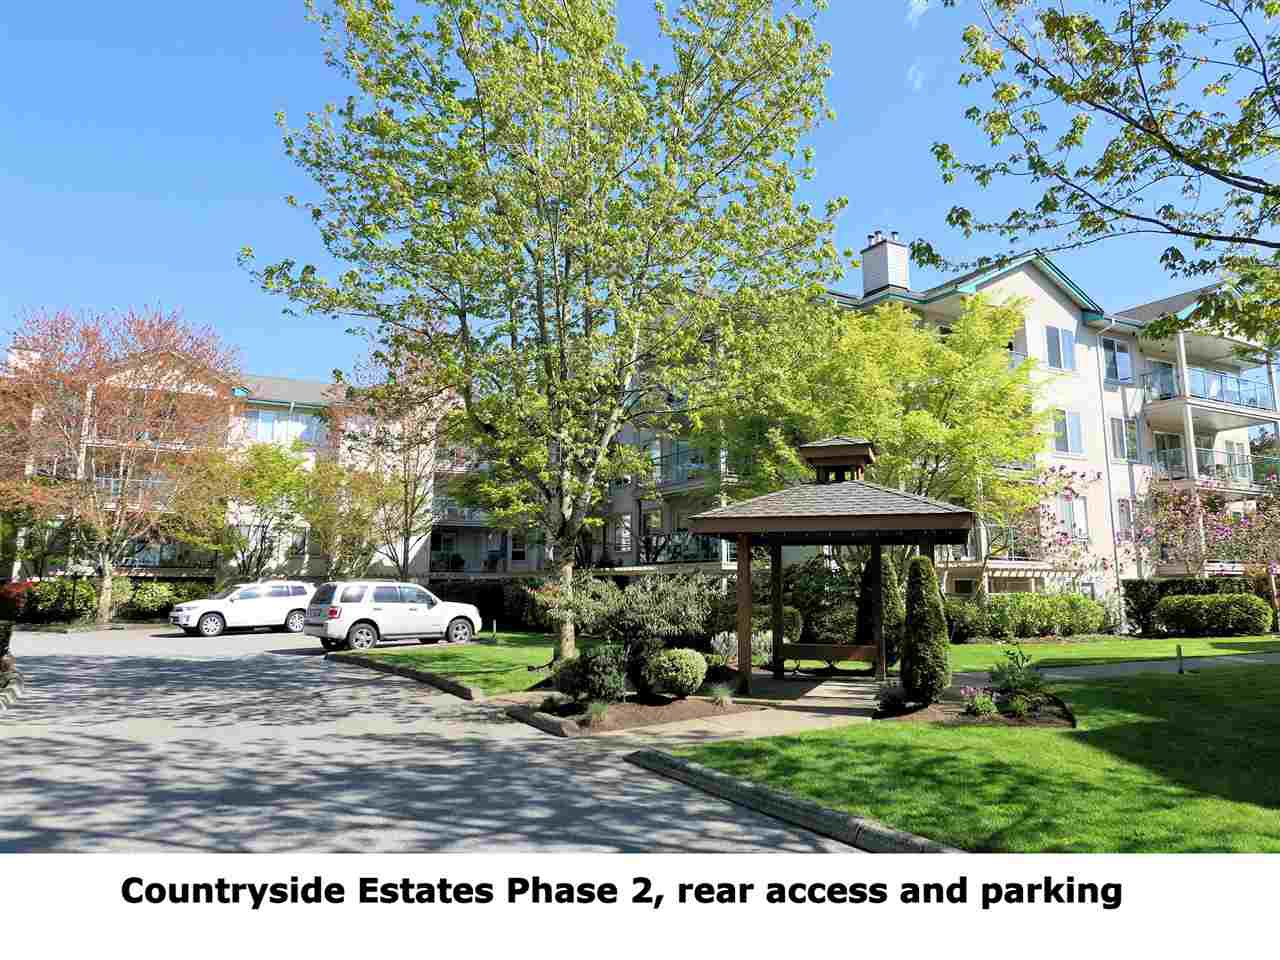 """Main Photo: 102 20443 53RD Street in Langley: Langley City Condo for sale in """"Countryside Estates"""" : MLS®# R2362376"""